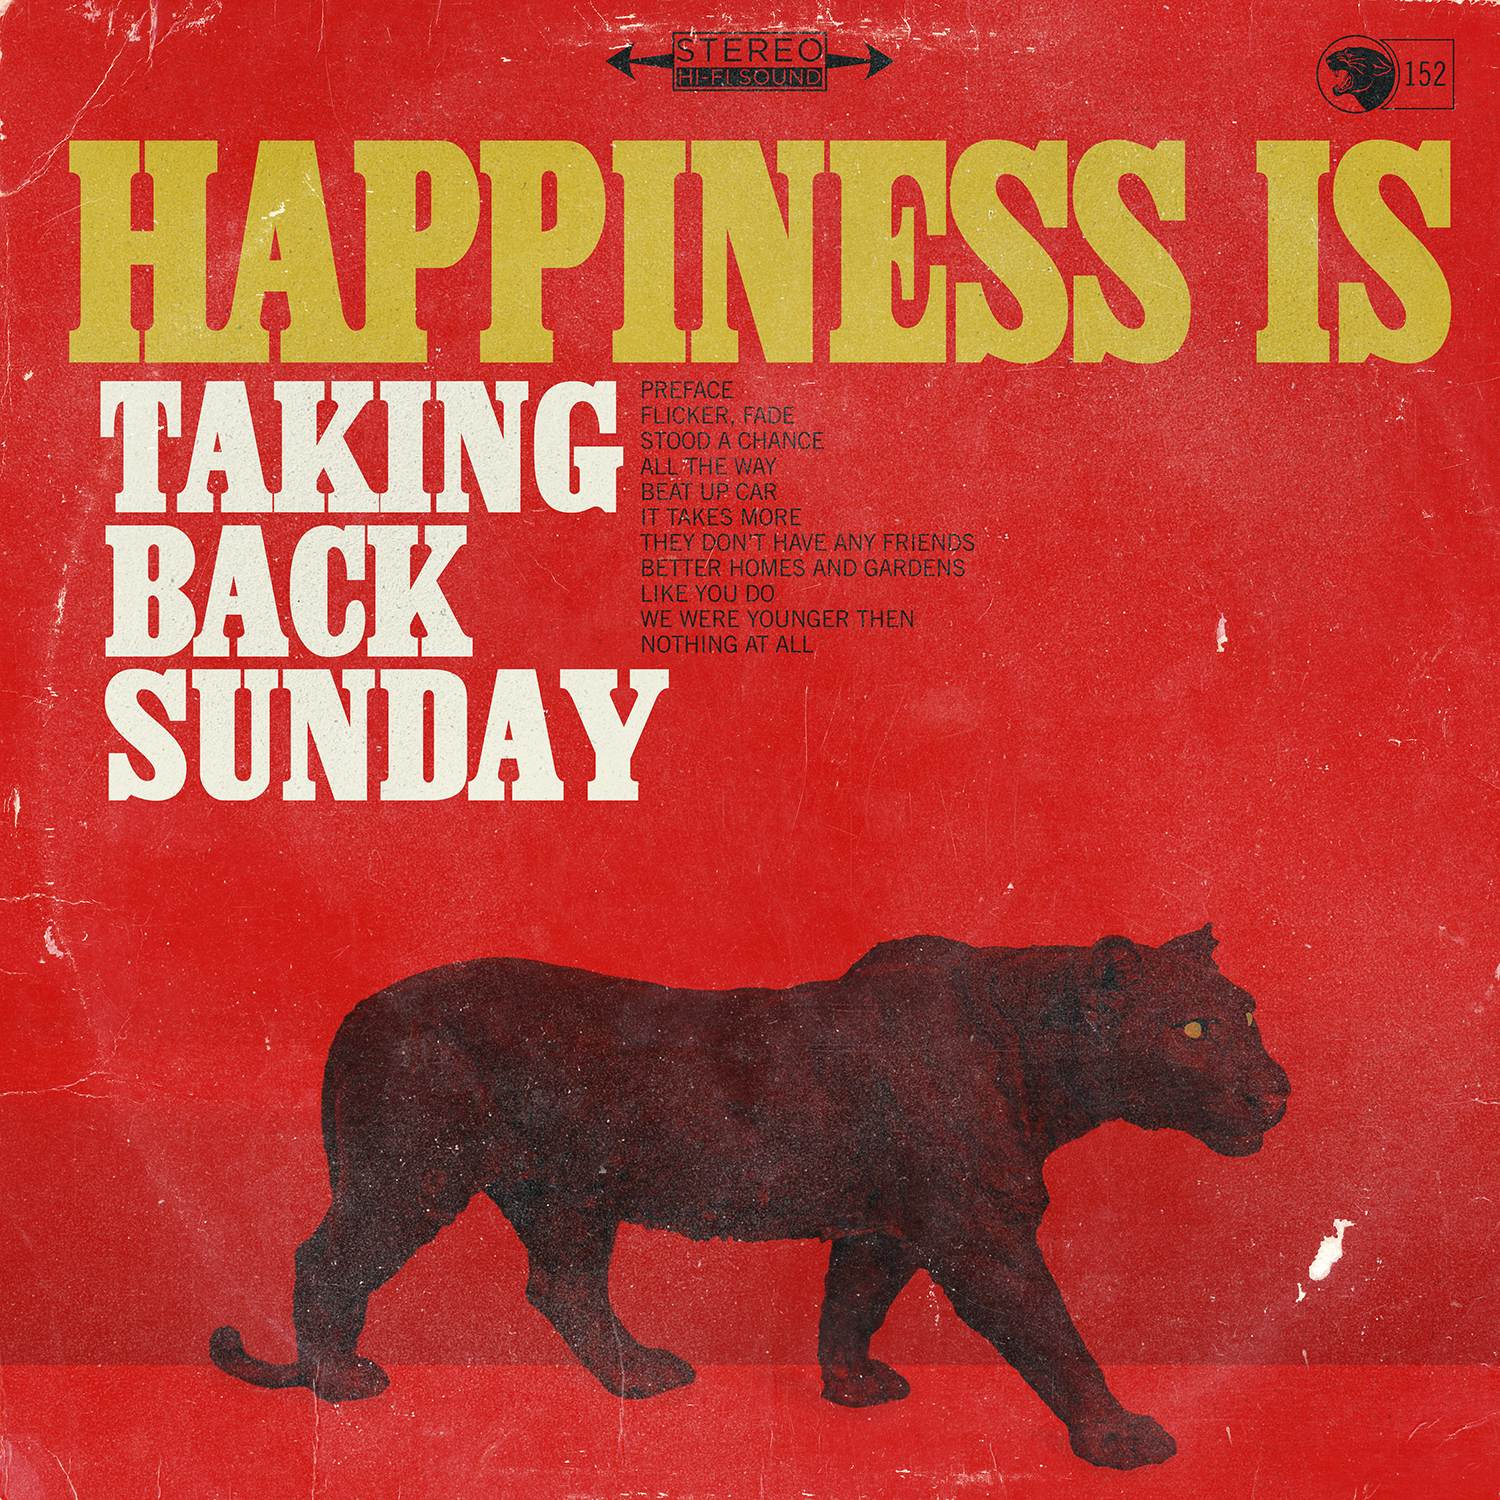 Taking Back Sunday - Happiness Is (2014)